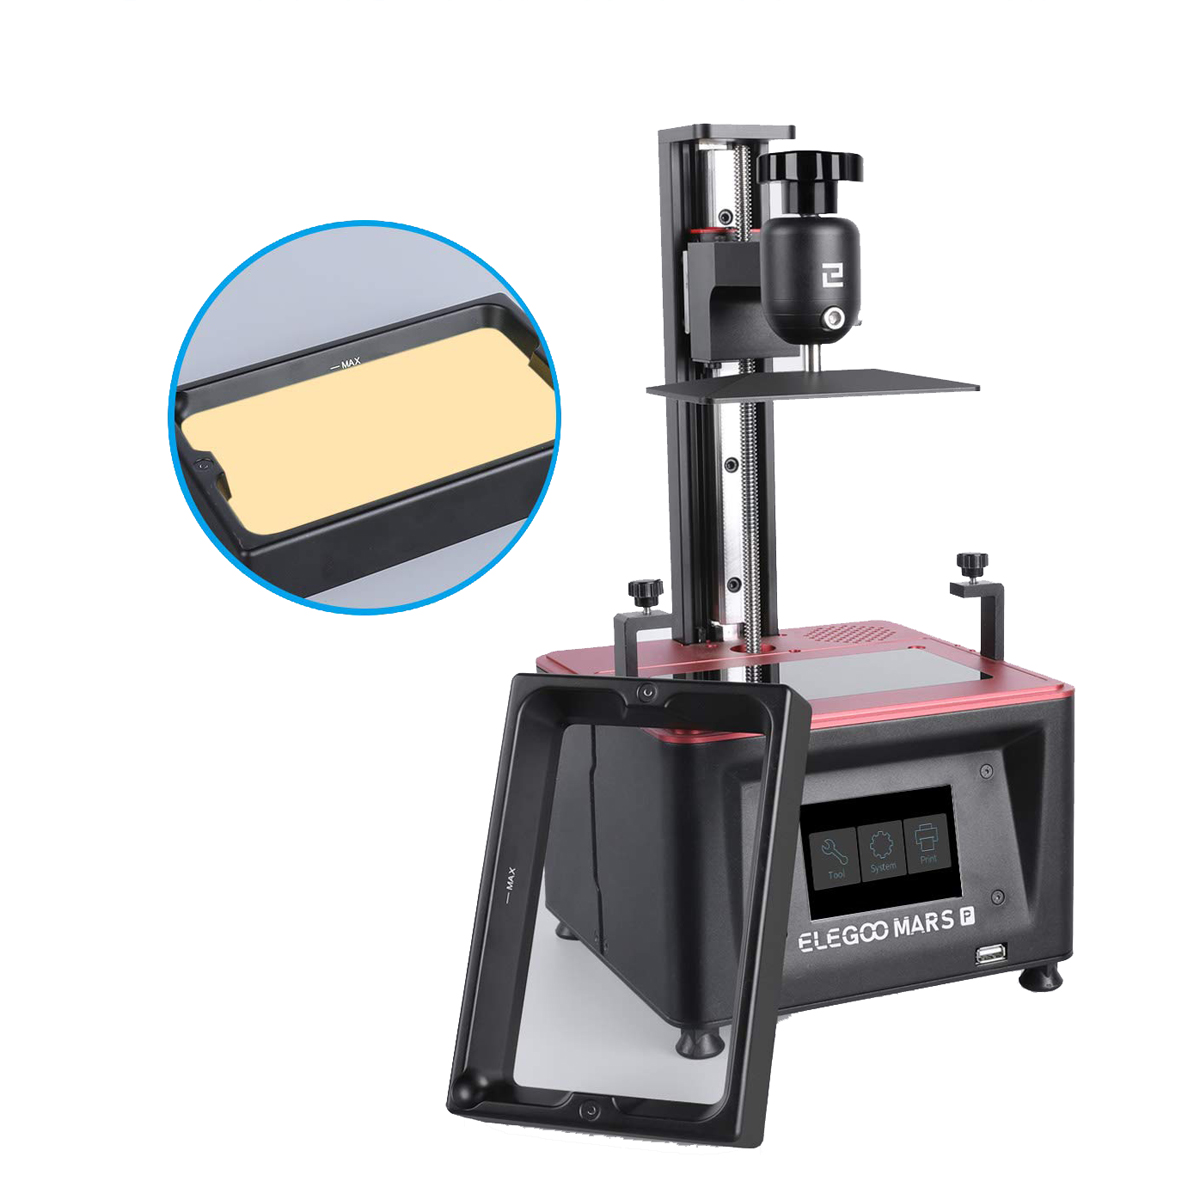 ELEGOO Mars Pro UV Photocuring LCD 3D Printer 4.53in(L) x 2.56in(W) x 5.9in(H) Printing Size with Matrix UV LED Light Source/Built-in Activated Carbon/Off-Line Print